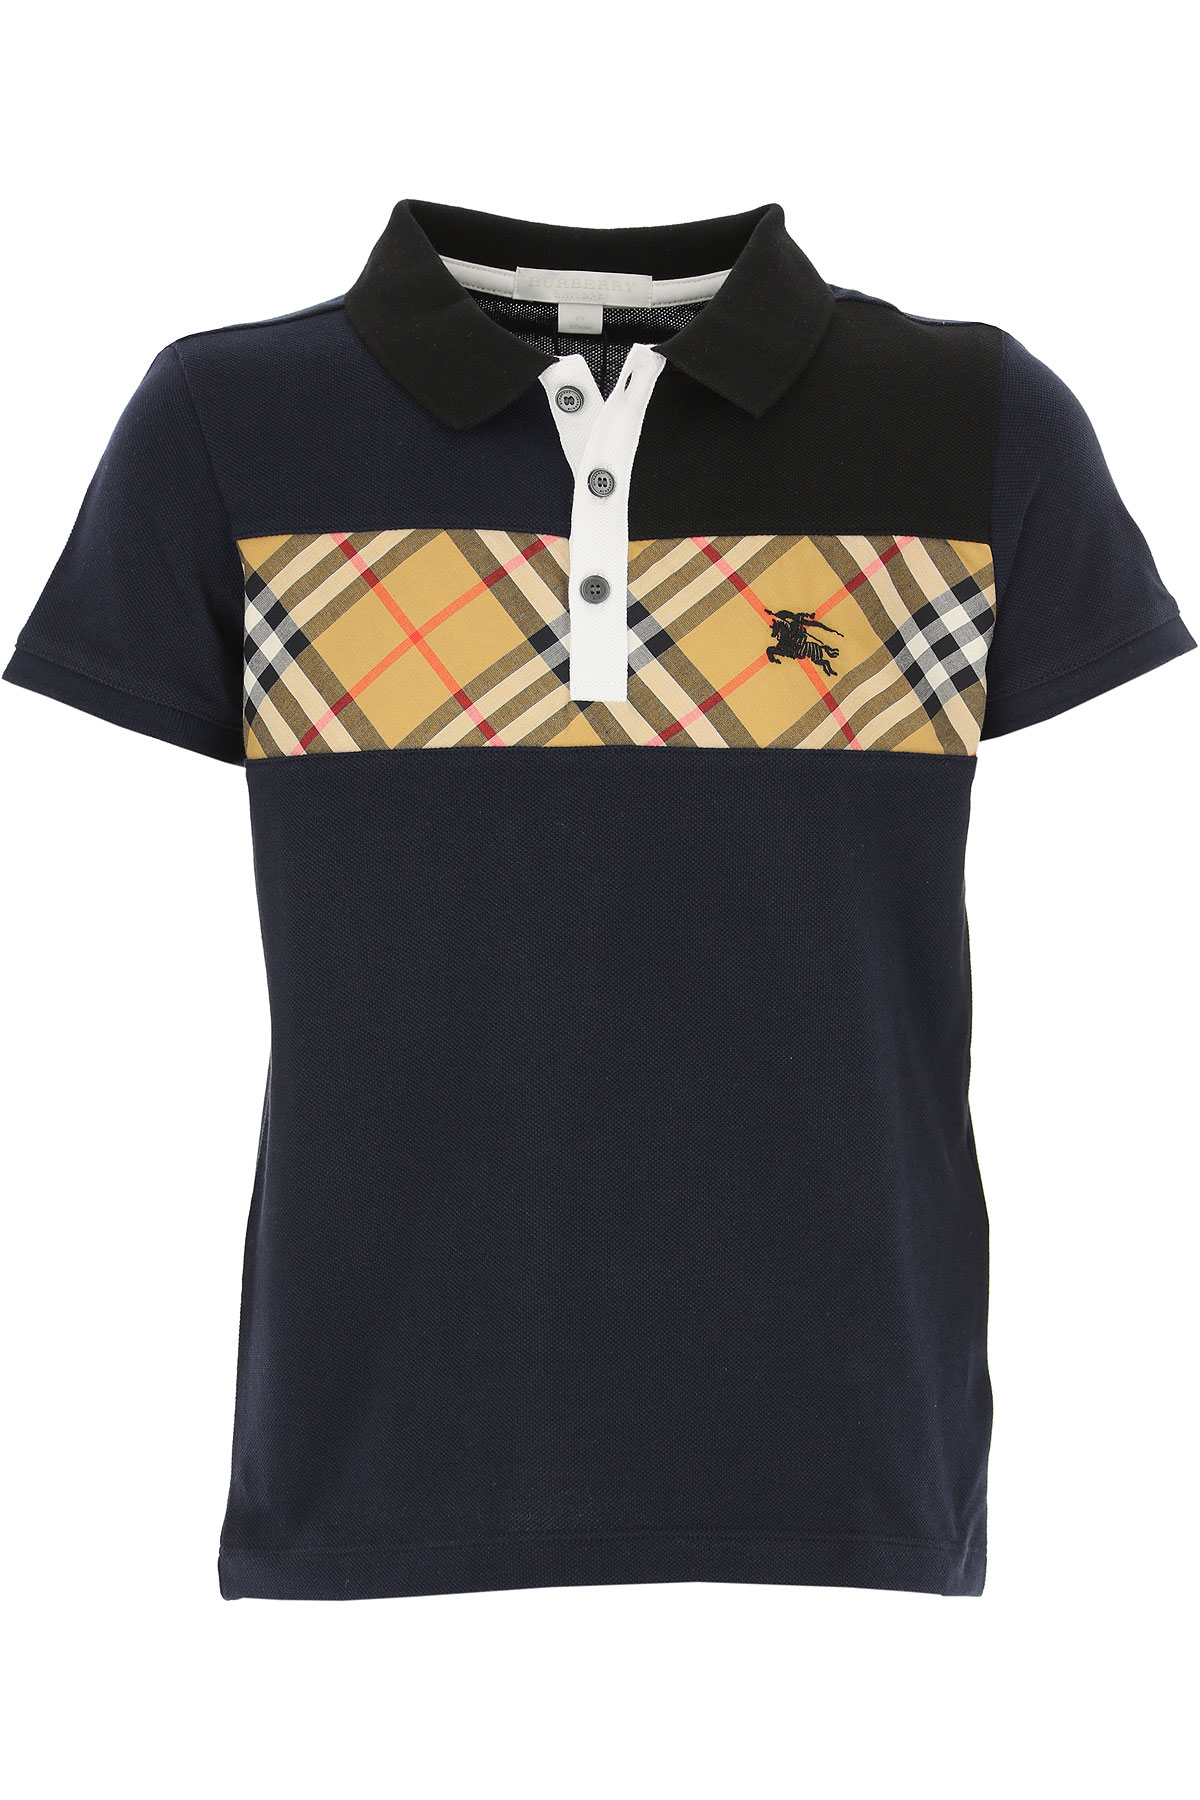 Image of Burberry Kids Polo Shirt for Boys, Blue, Cotton, 2017, 10Y 14Y 4Y 6Y